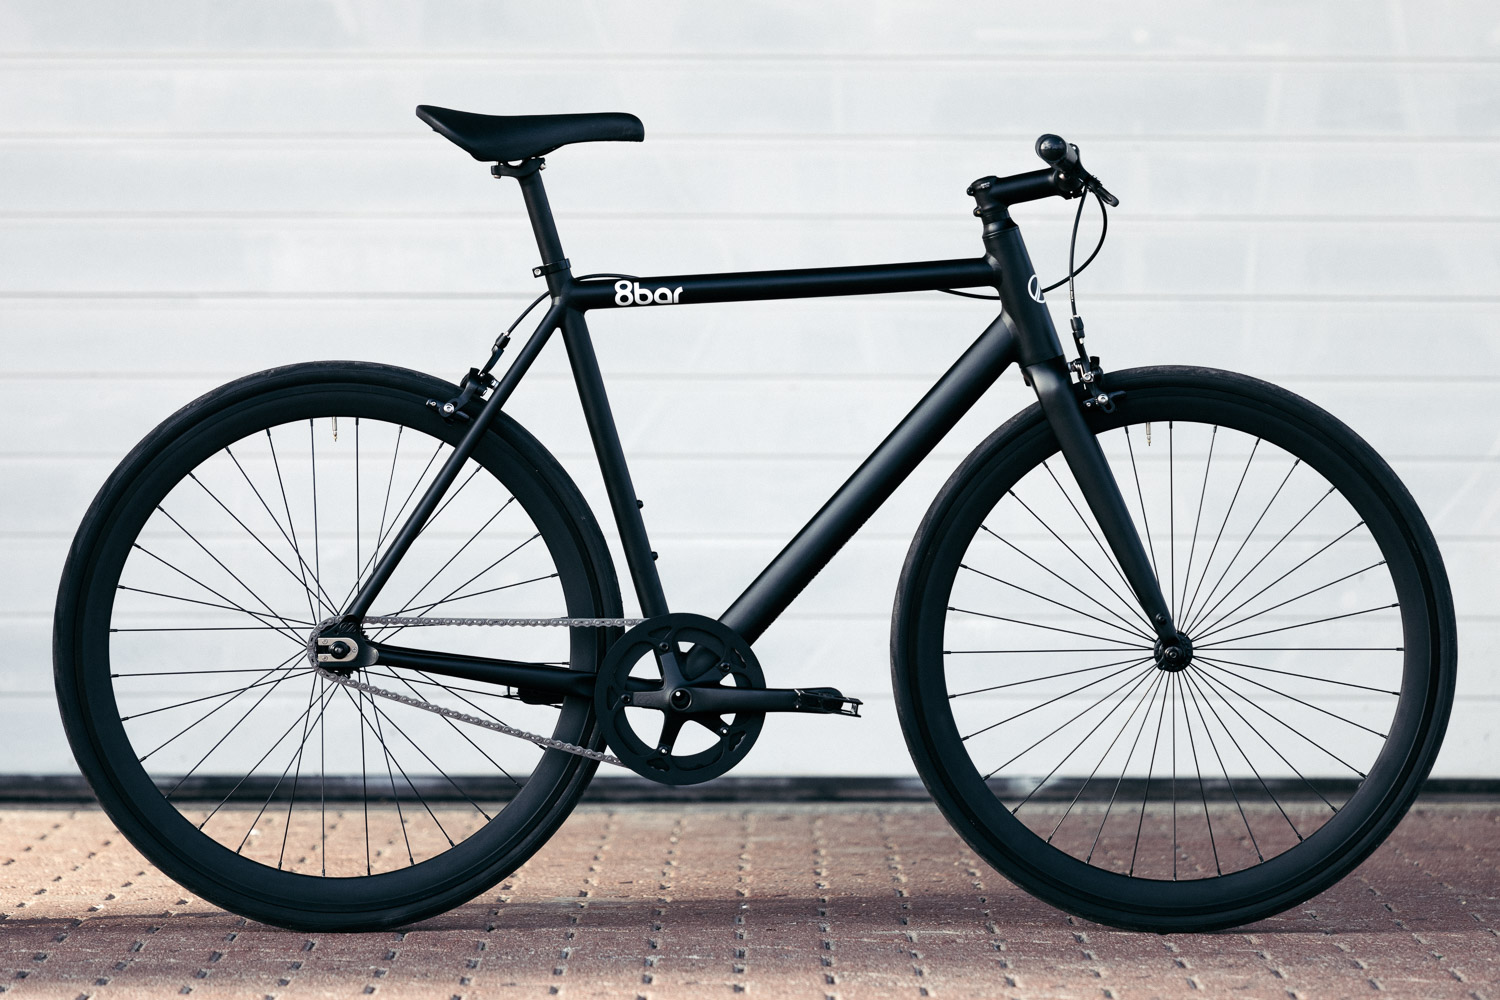 8bar-fhain-lookbook-singlespeed-fixed-gear-fixie-lr-19